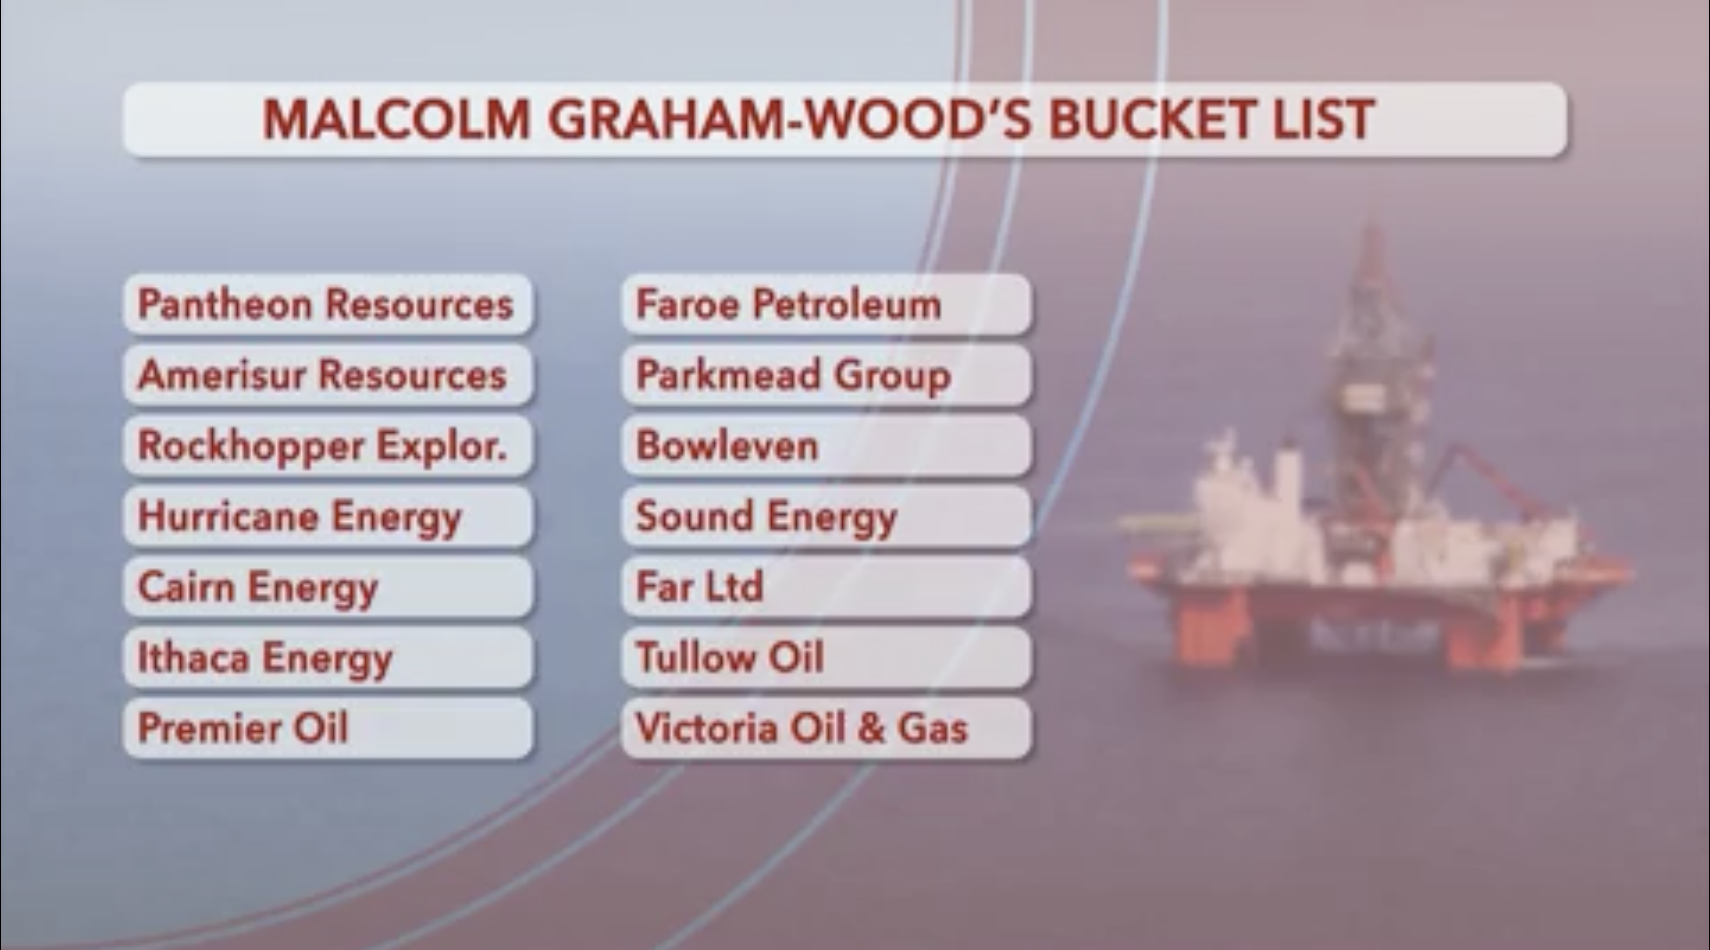 IG Interview: The bucket list of 'must have' oil stocks